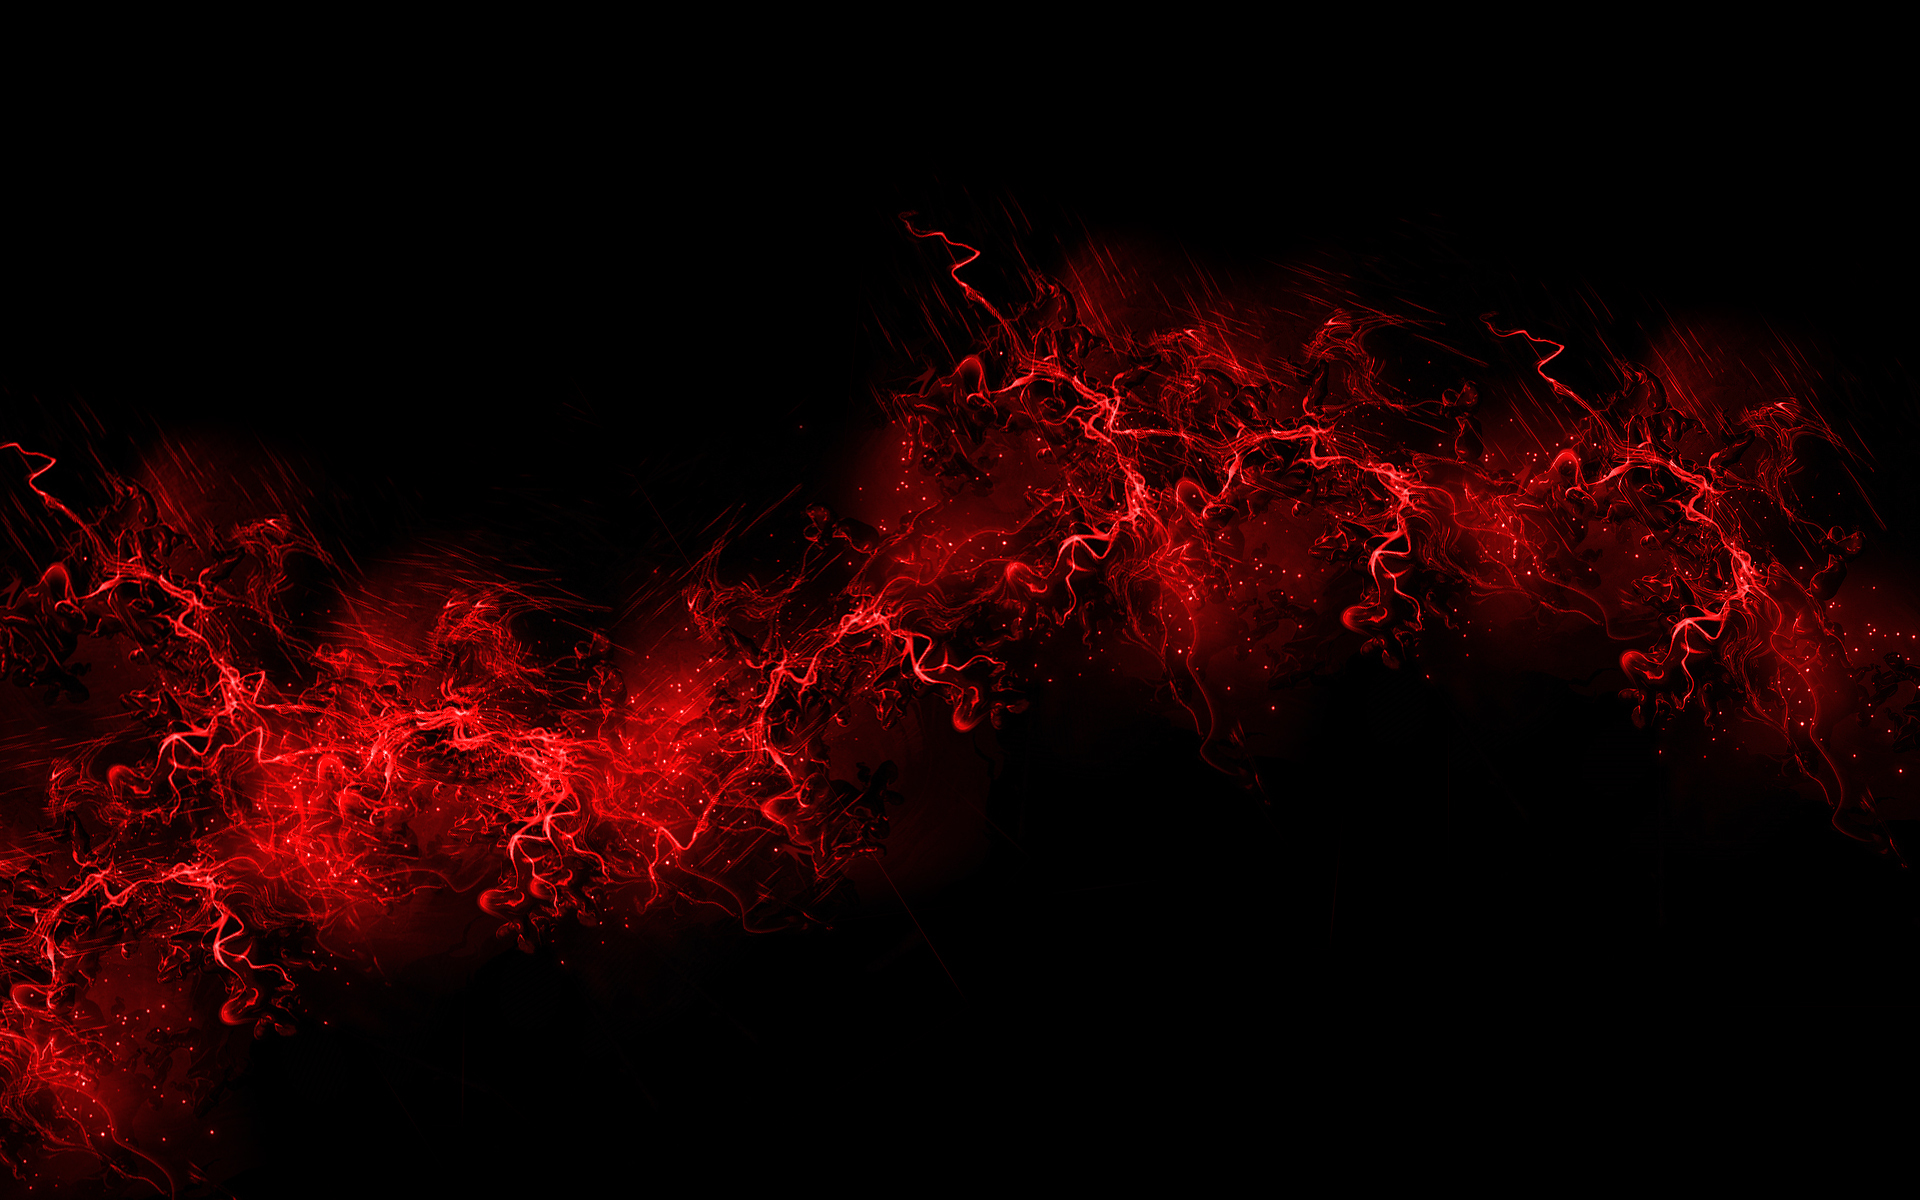 Red and black background picture 24 desktop background for Black and red wallpaper